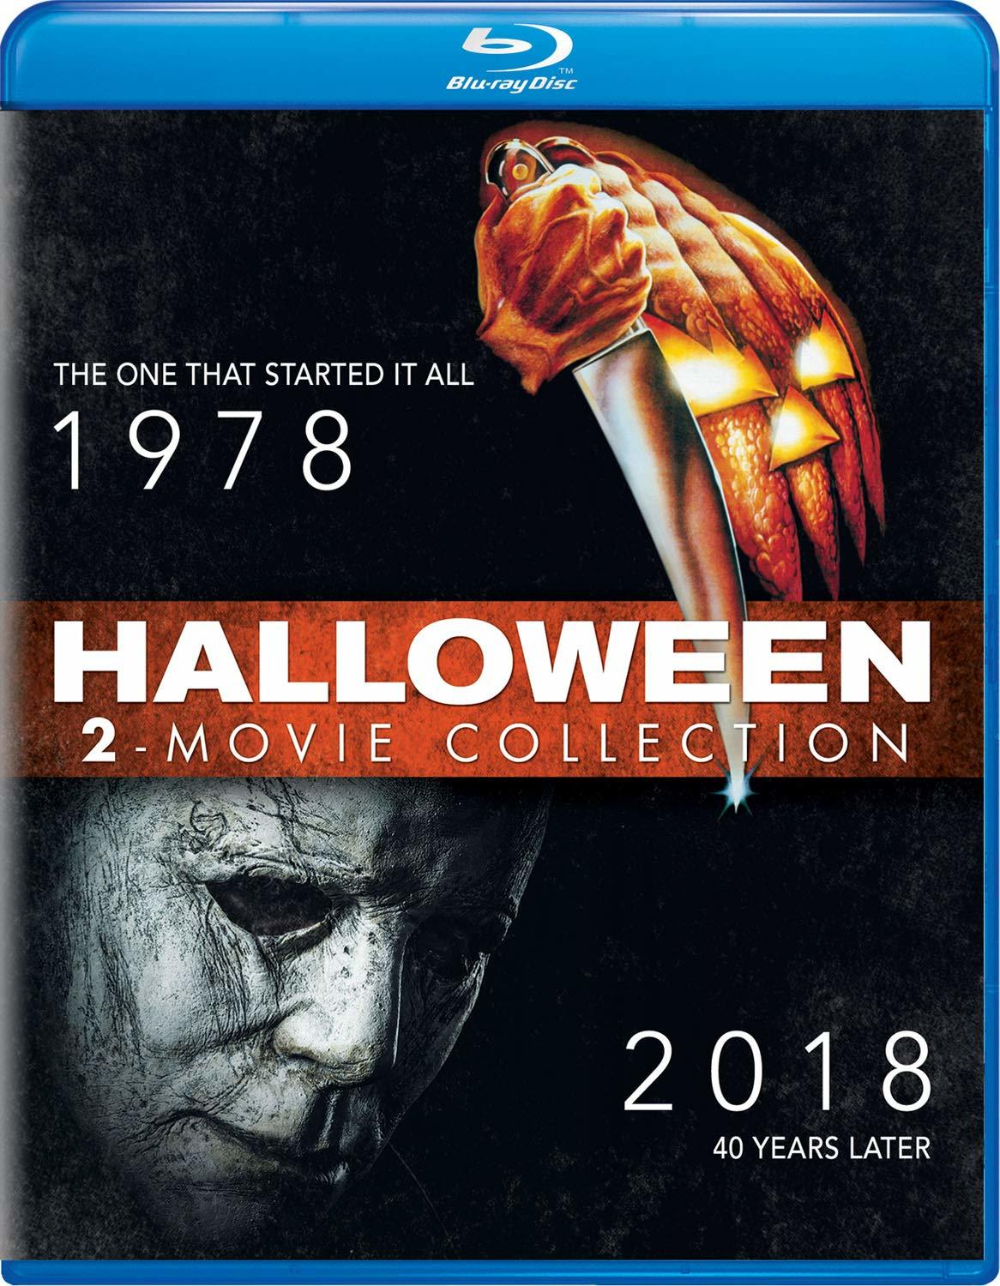 Halloween 2020 Blu Ray Relese Halloween 2 Movie Collection Blu ray Release Date February 4, 2020